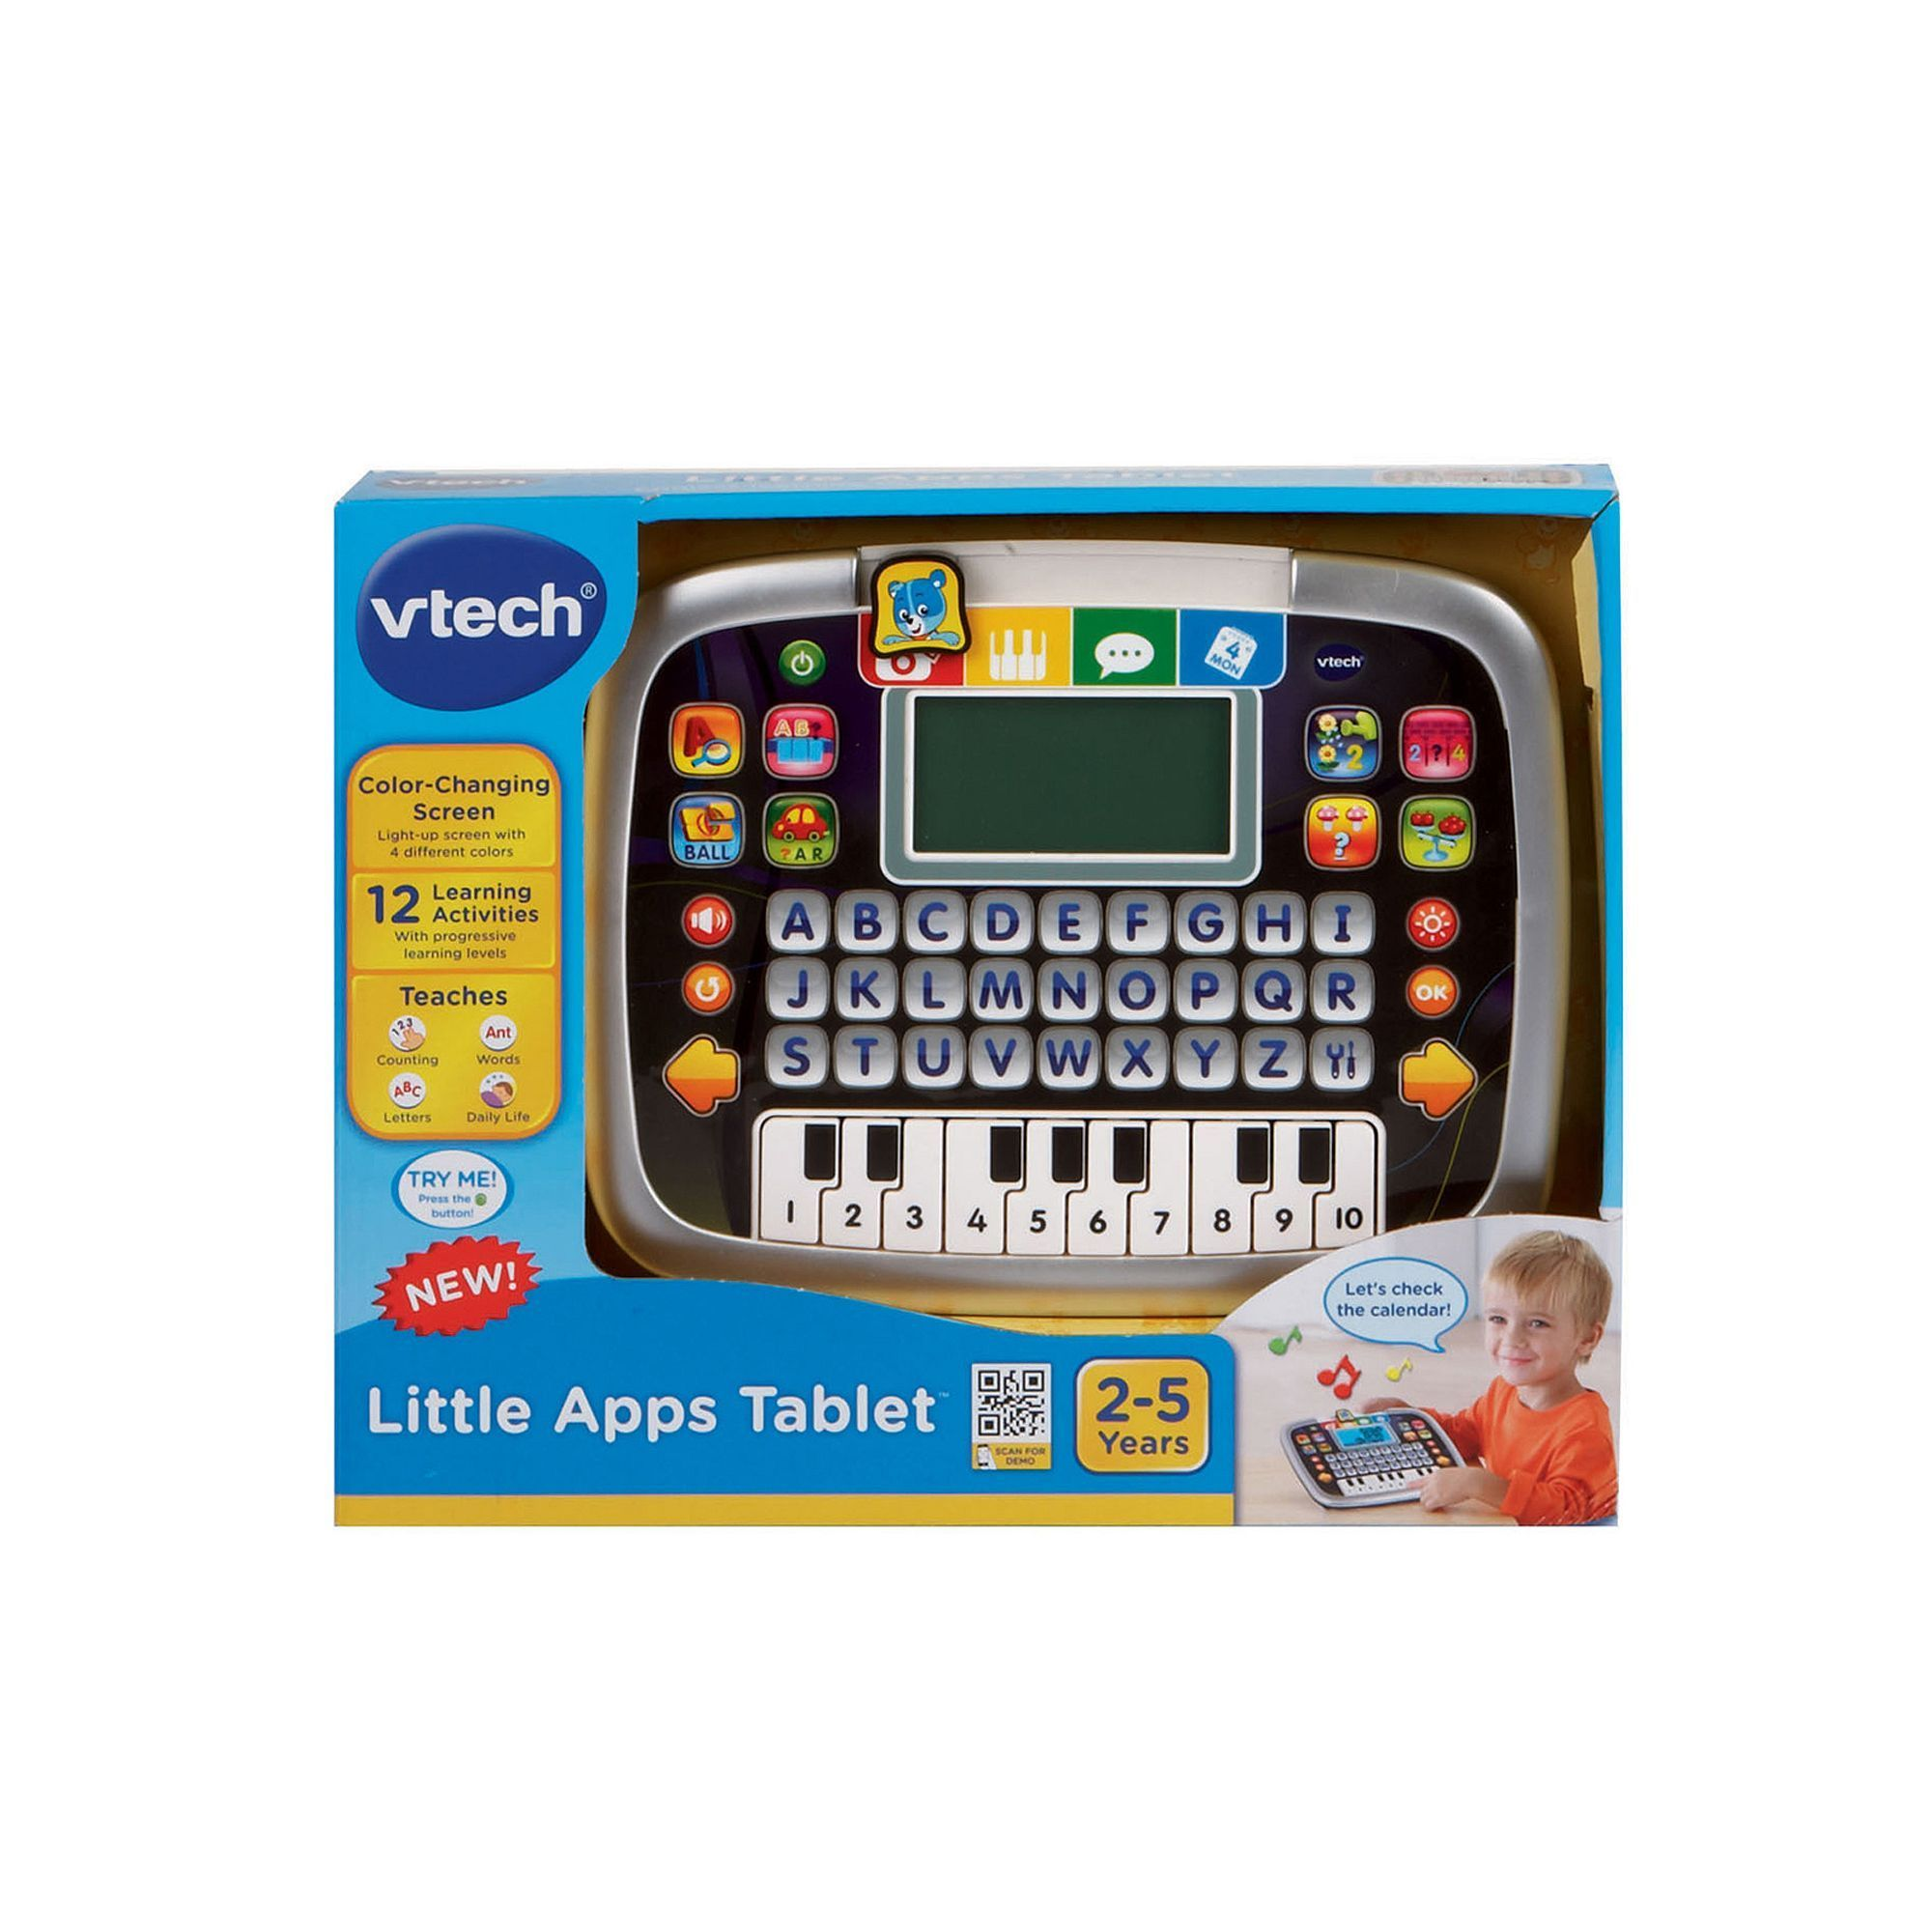 VTech Little Apps Tablet Educational toys for toddlers